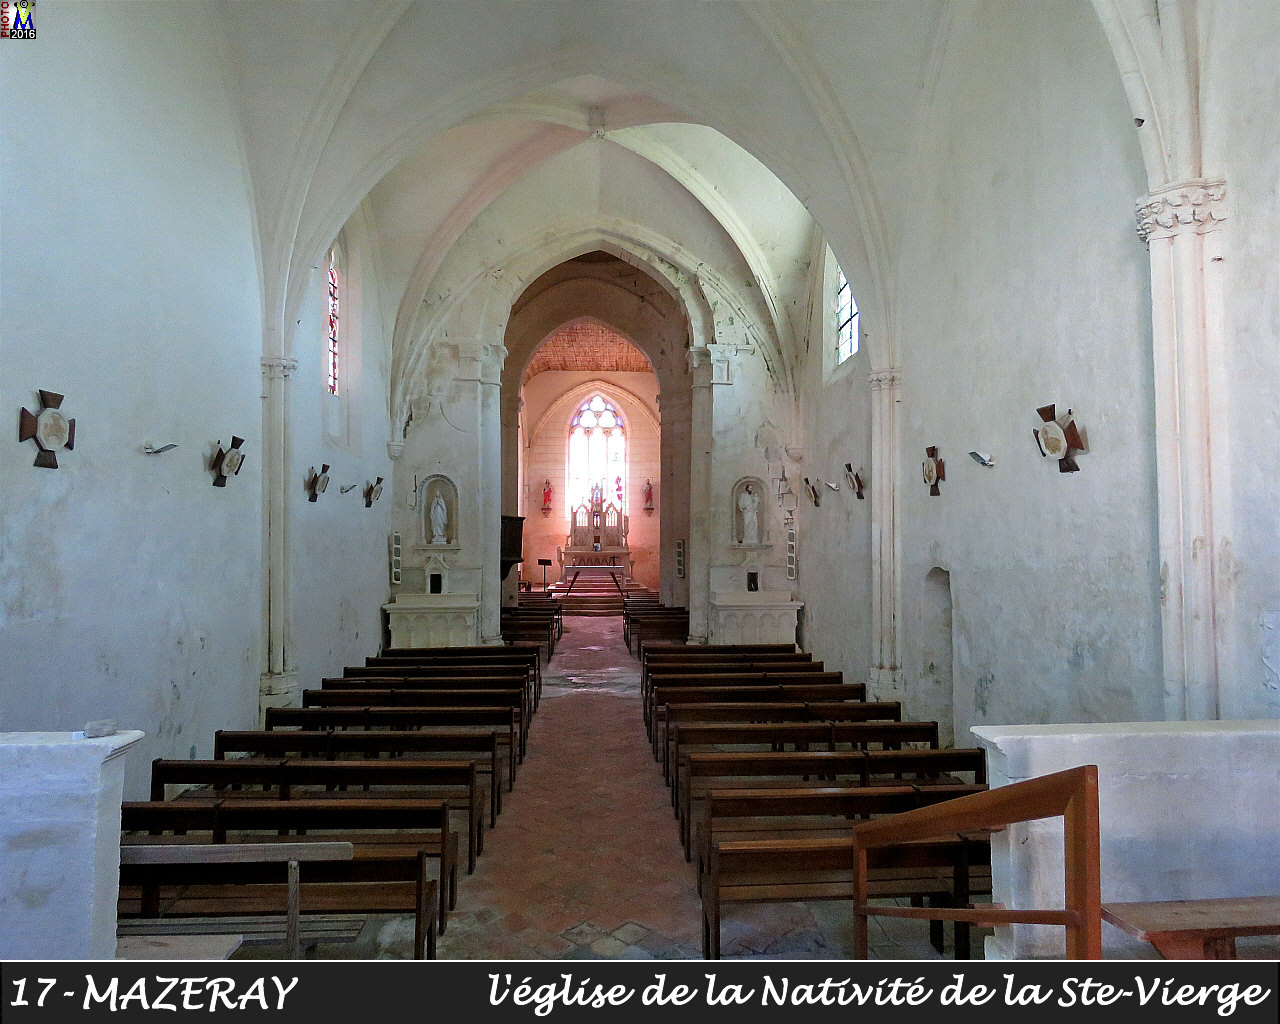 17MAZERAY_eglise_1100.jpg